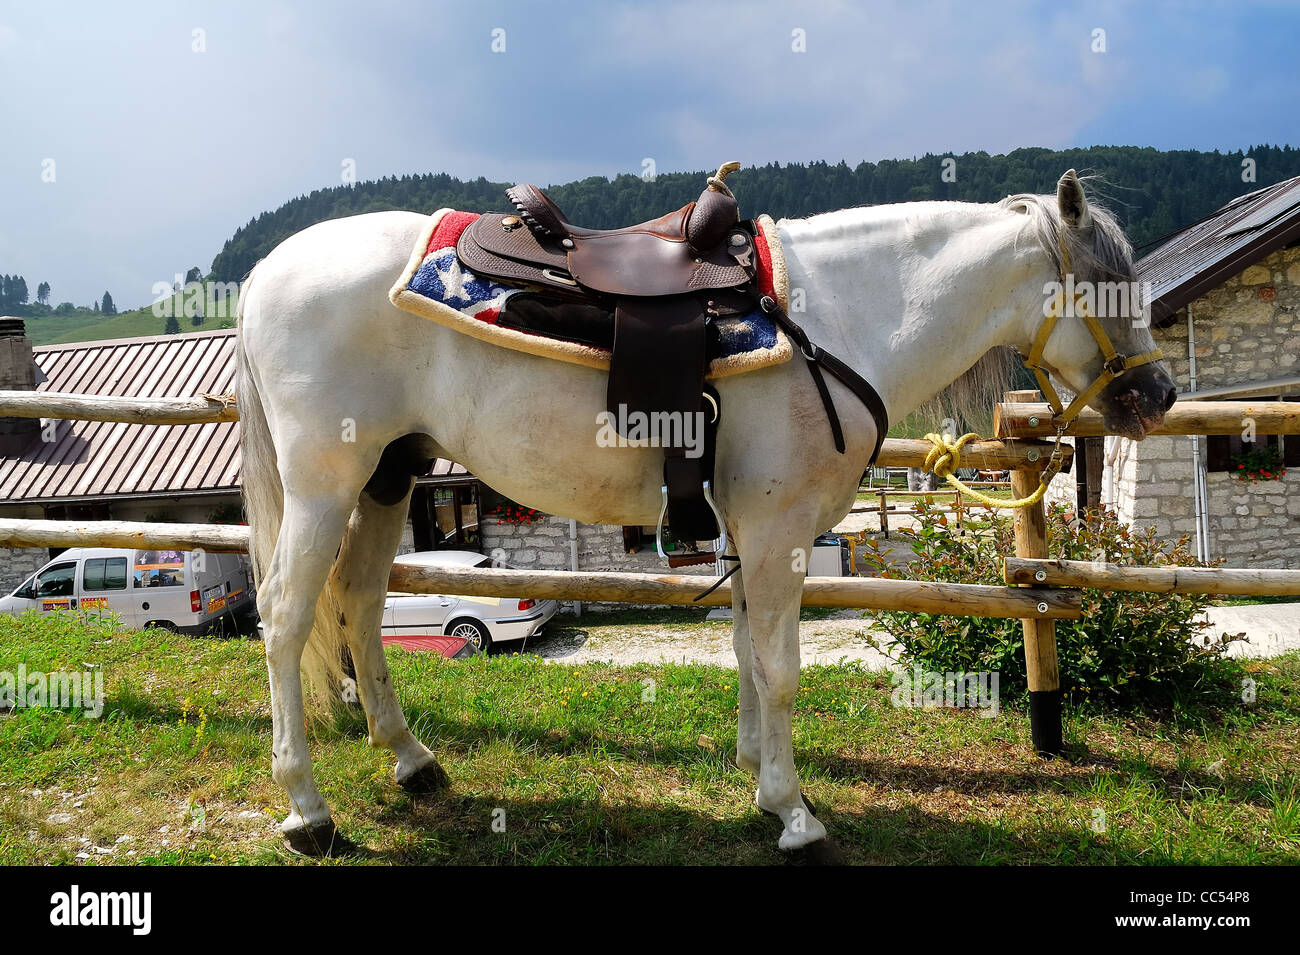 Mount Grappa Italy A White Horse With A Western Saddle Waits For Stock Photo Alamy